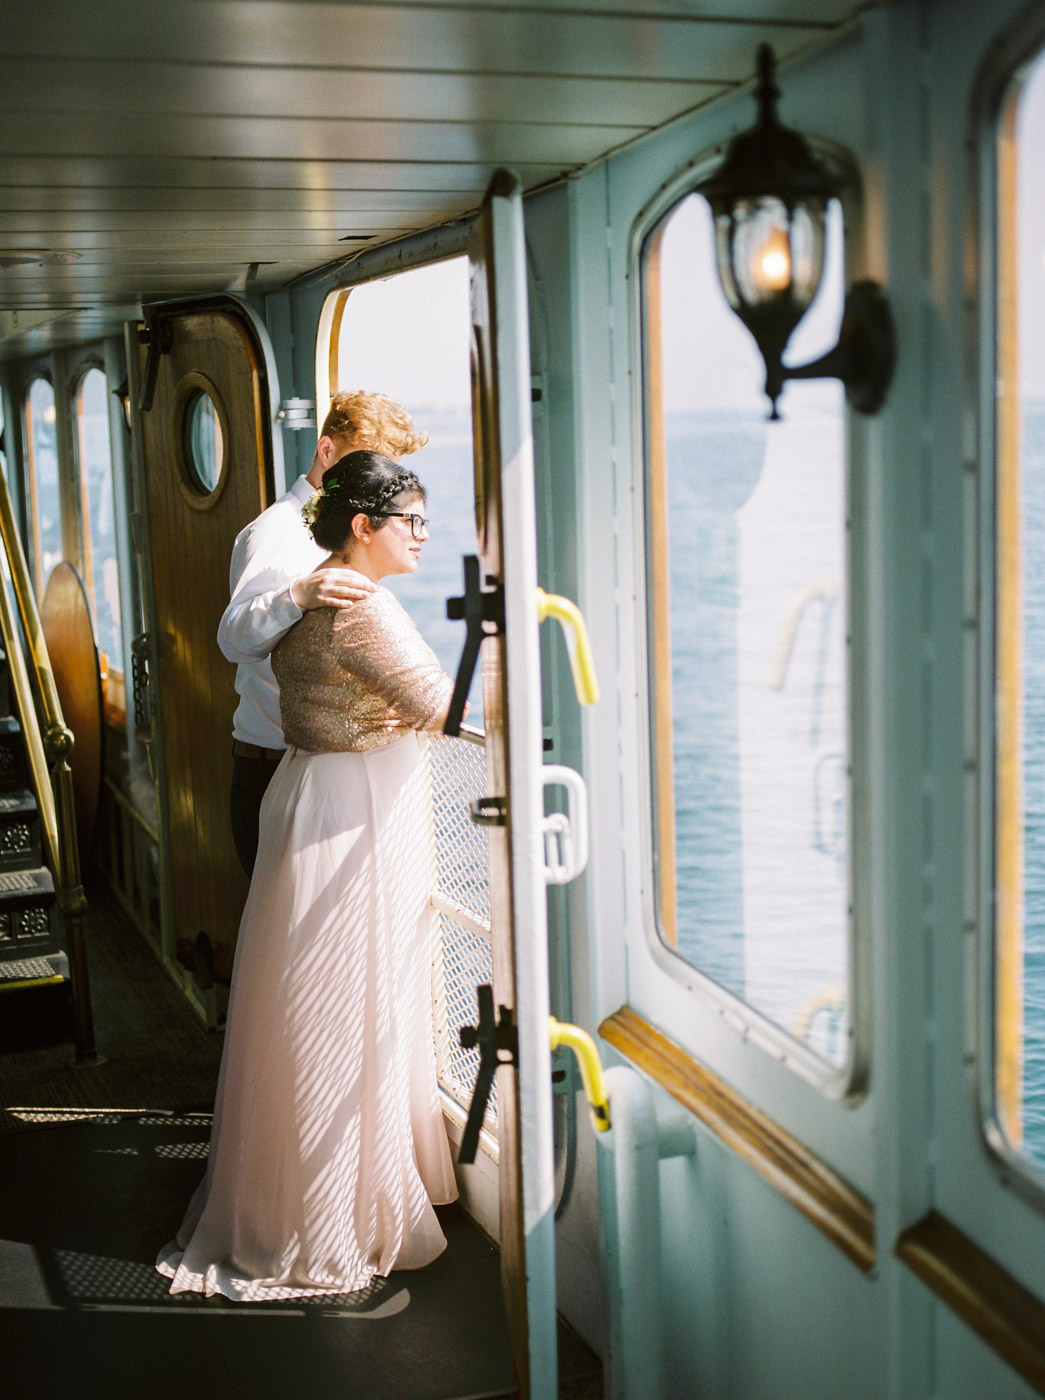 corynn_fowler_photography_toronto_wedding_boat_harbourfont-444.jpg